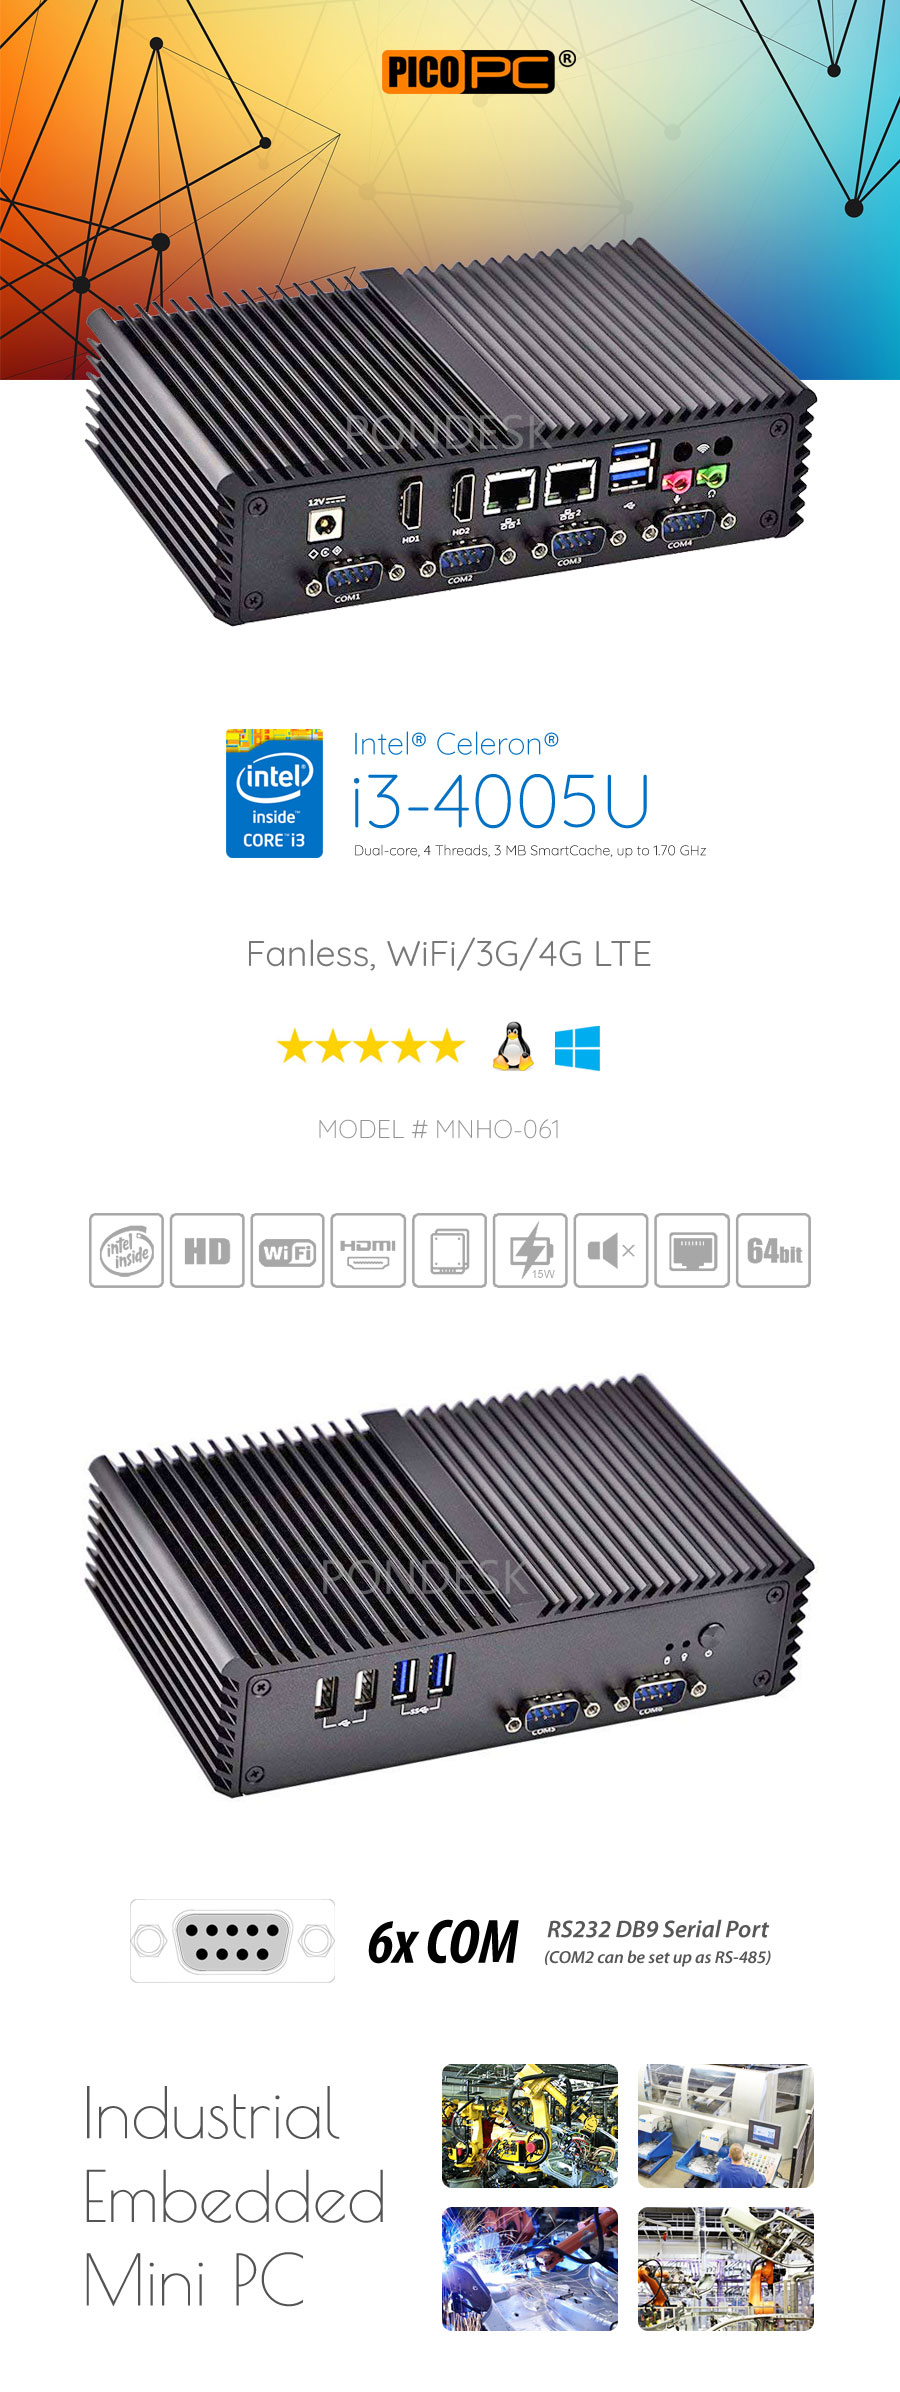 Intel® i3-4005U WiFi 4G 6COM 2LAN Fanless Industrial Mini PC - MNHO-061 | Image